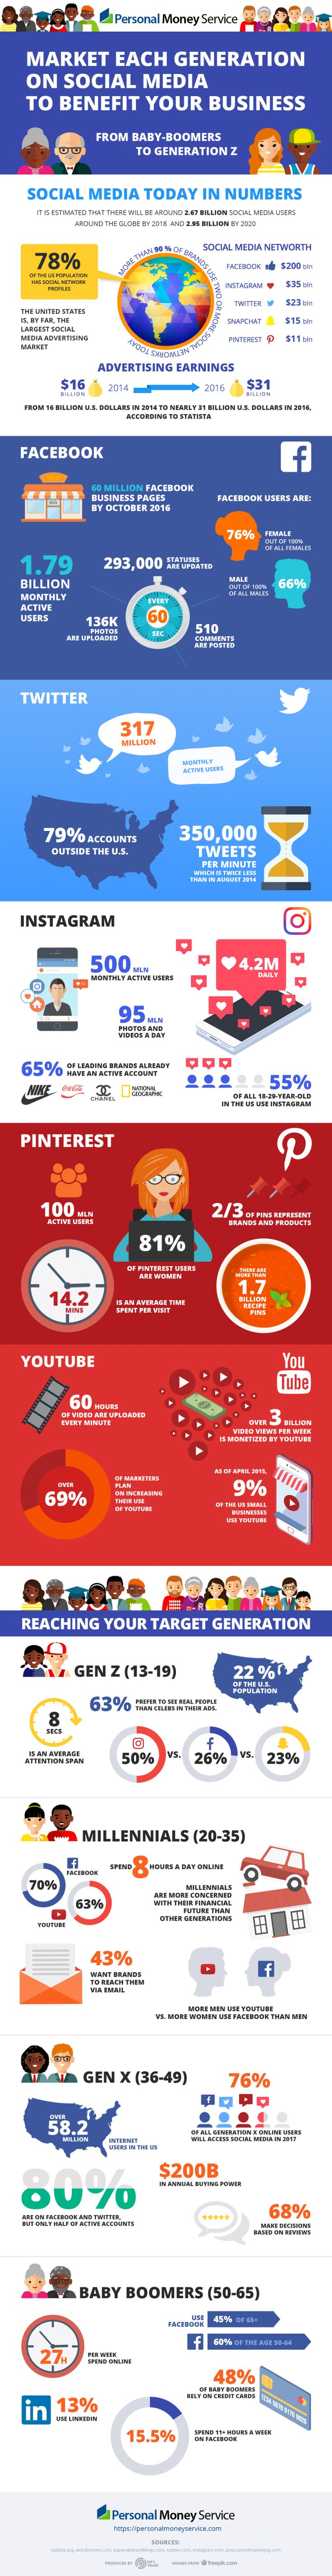 50 Essential Stats to Guide Your #SocialMedia #Marketing Strategy in 2017 #Infographic